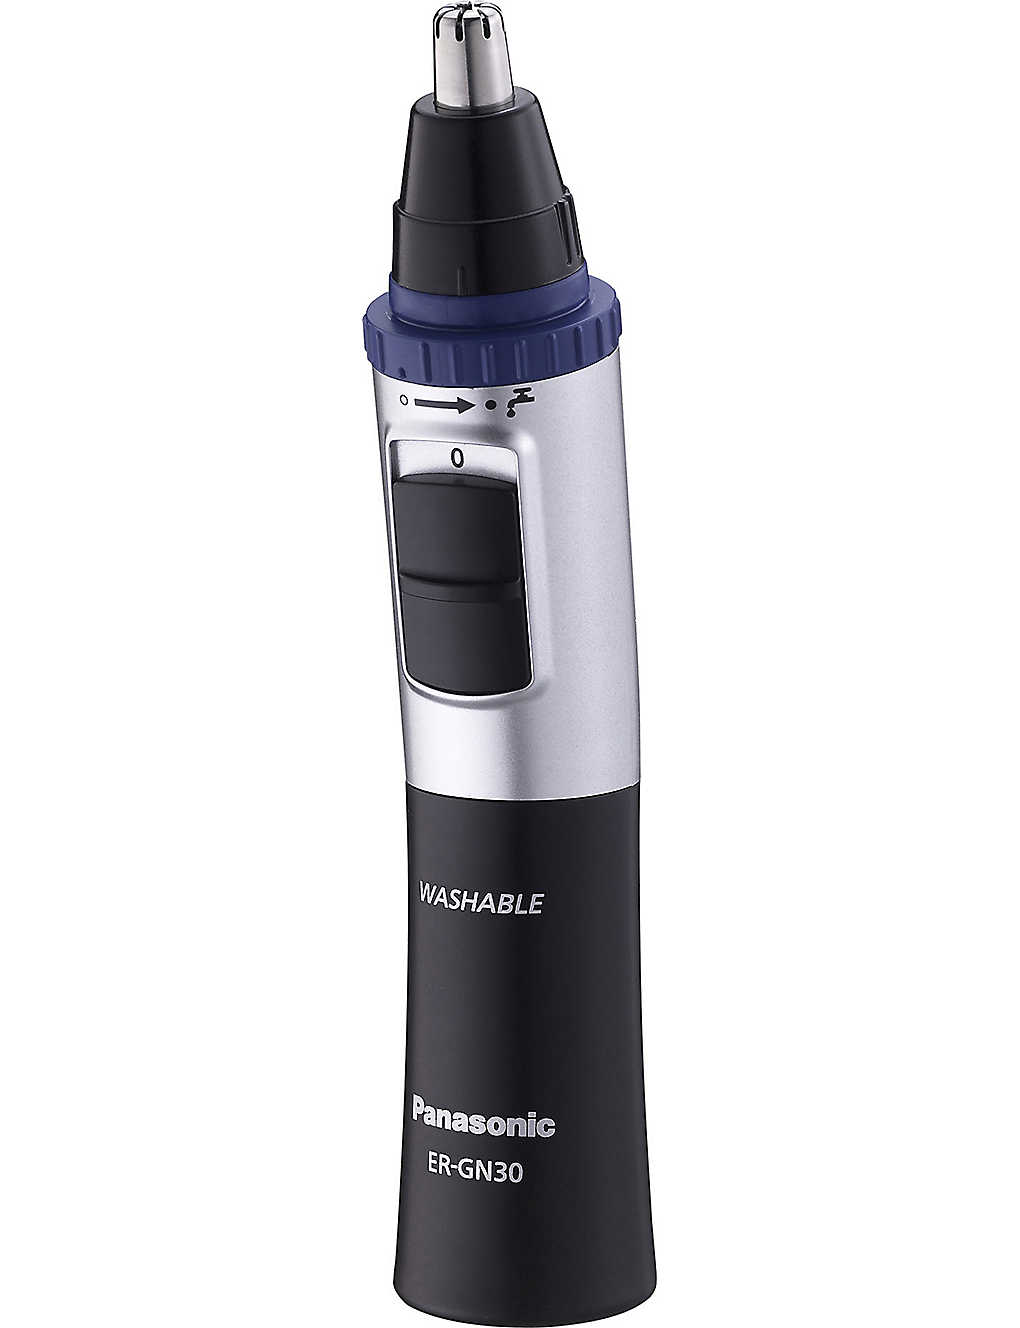 PANASONIC: Nose, ear and eyebrow trimmer